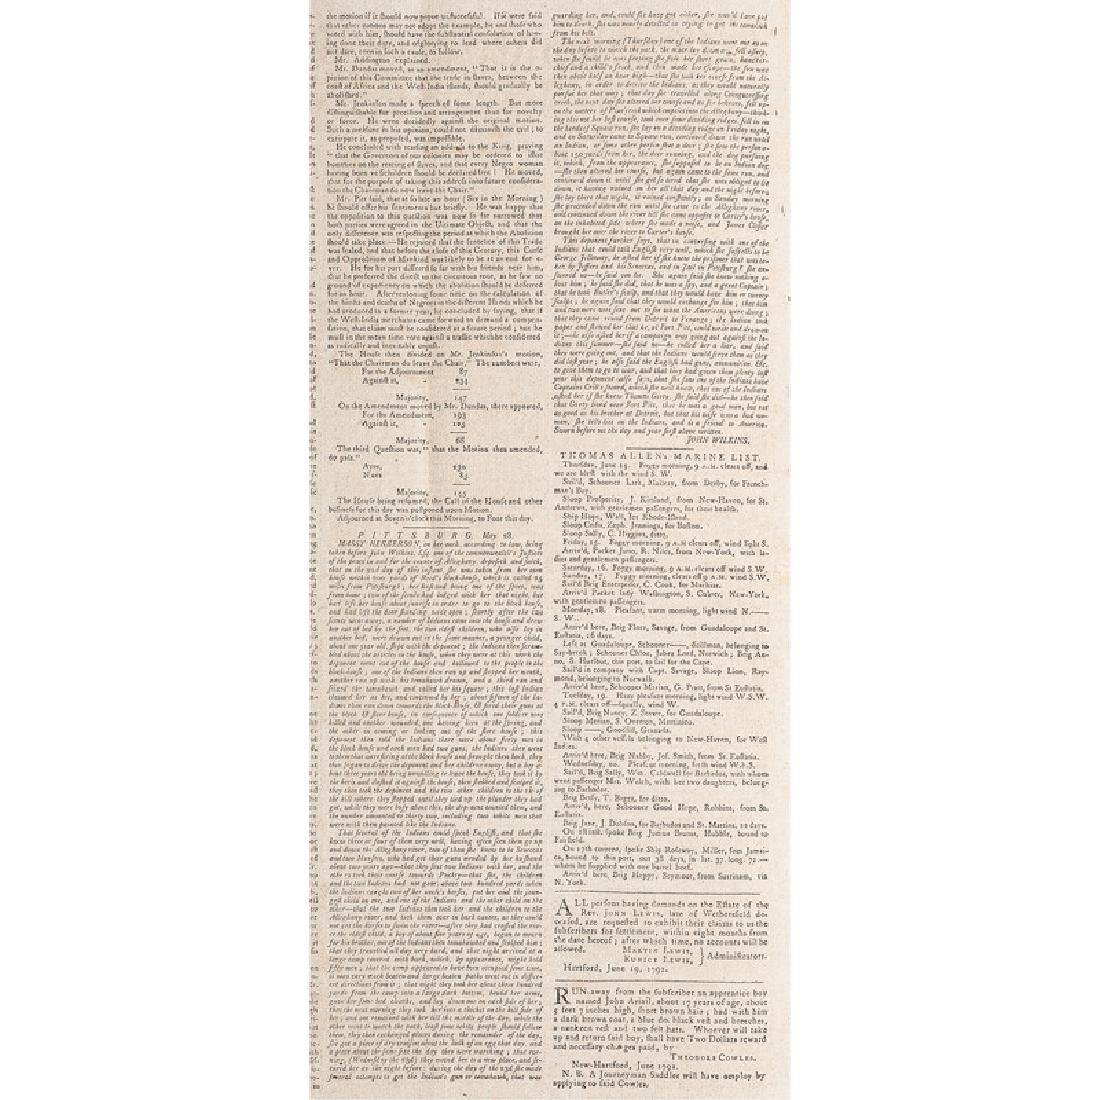 The Connecticut Courant Containing Account of the